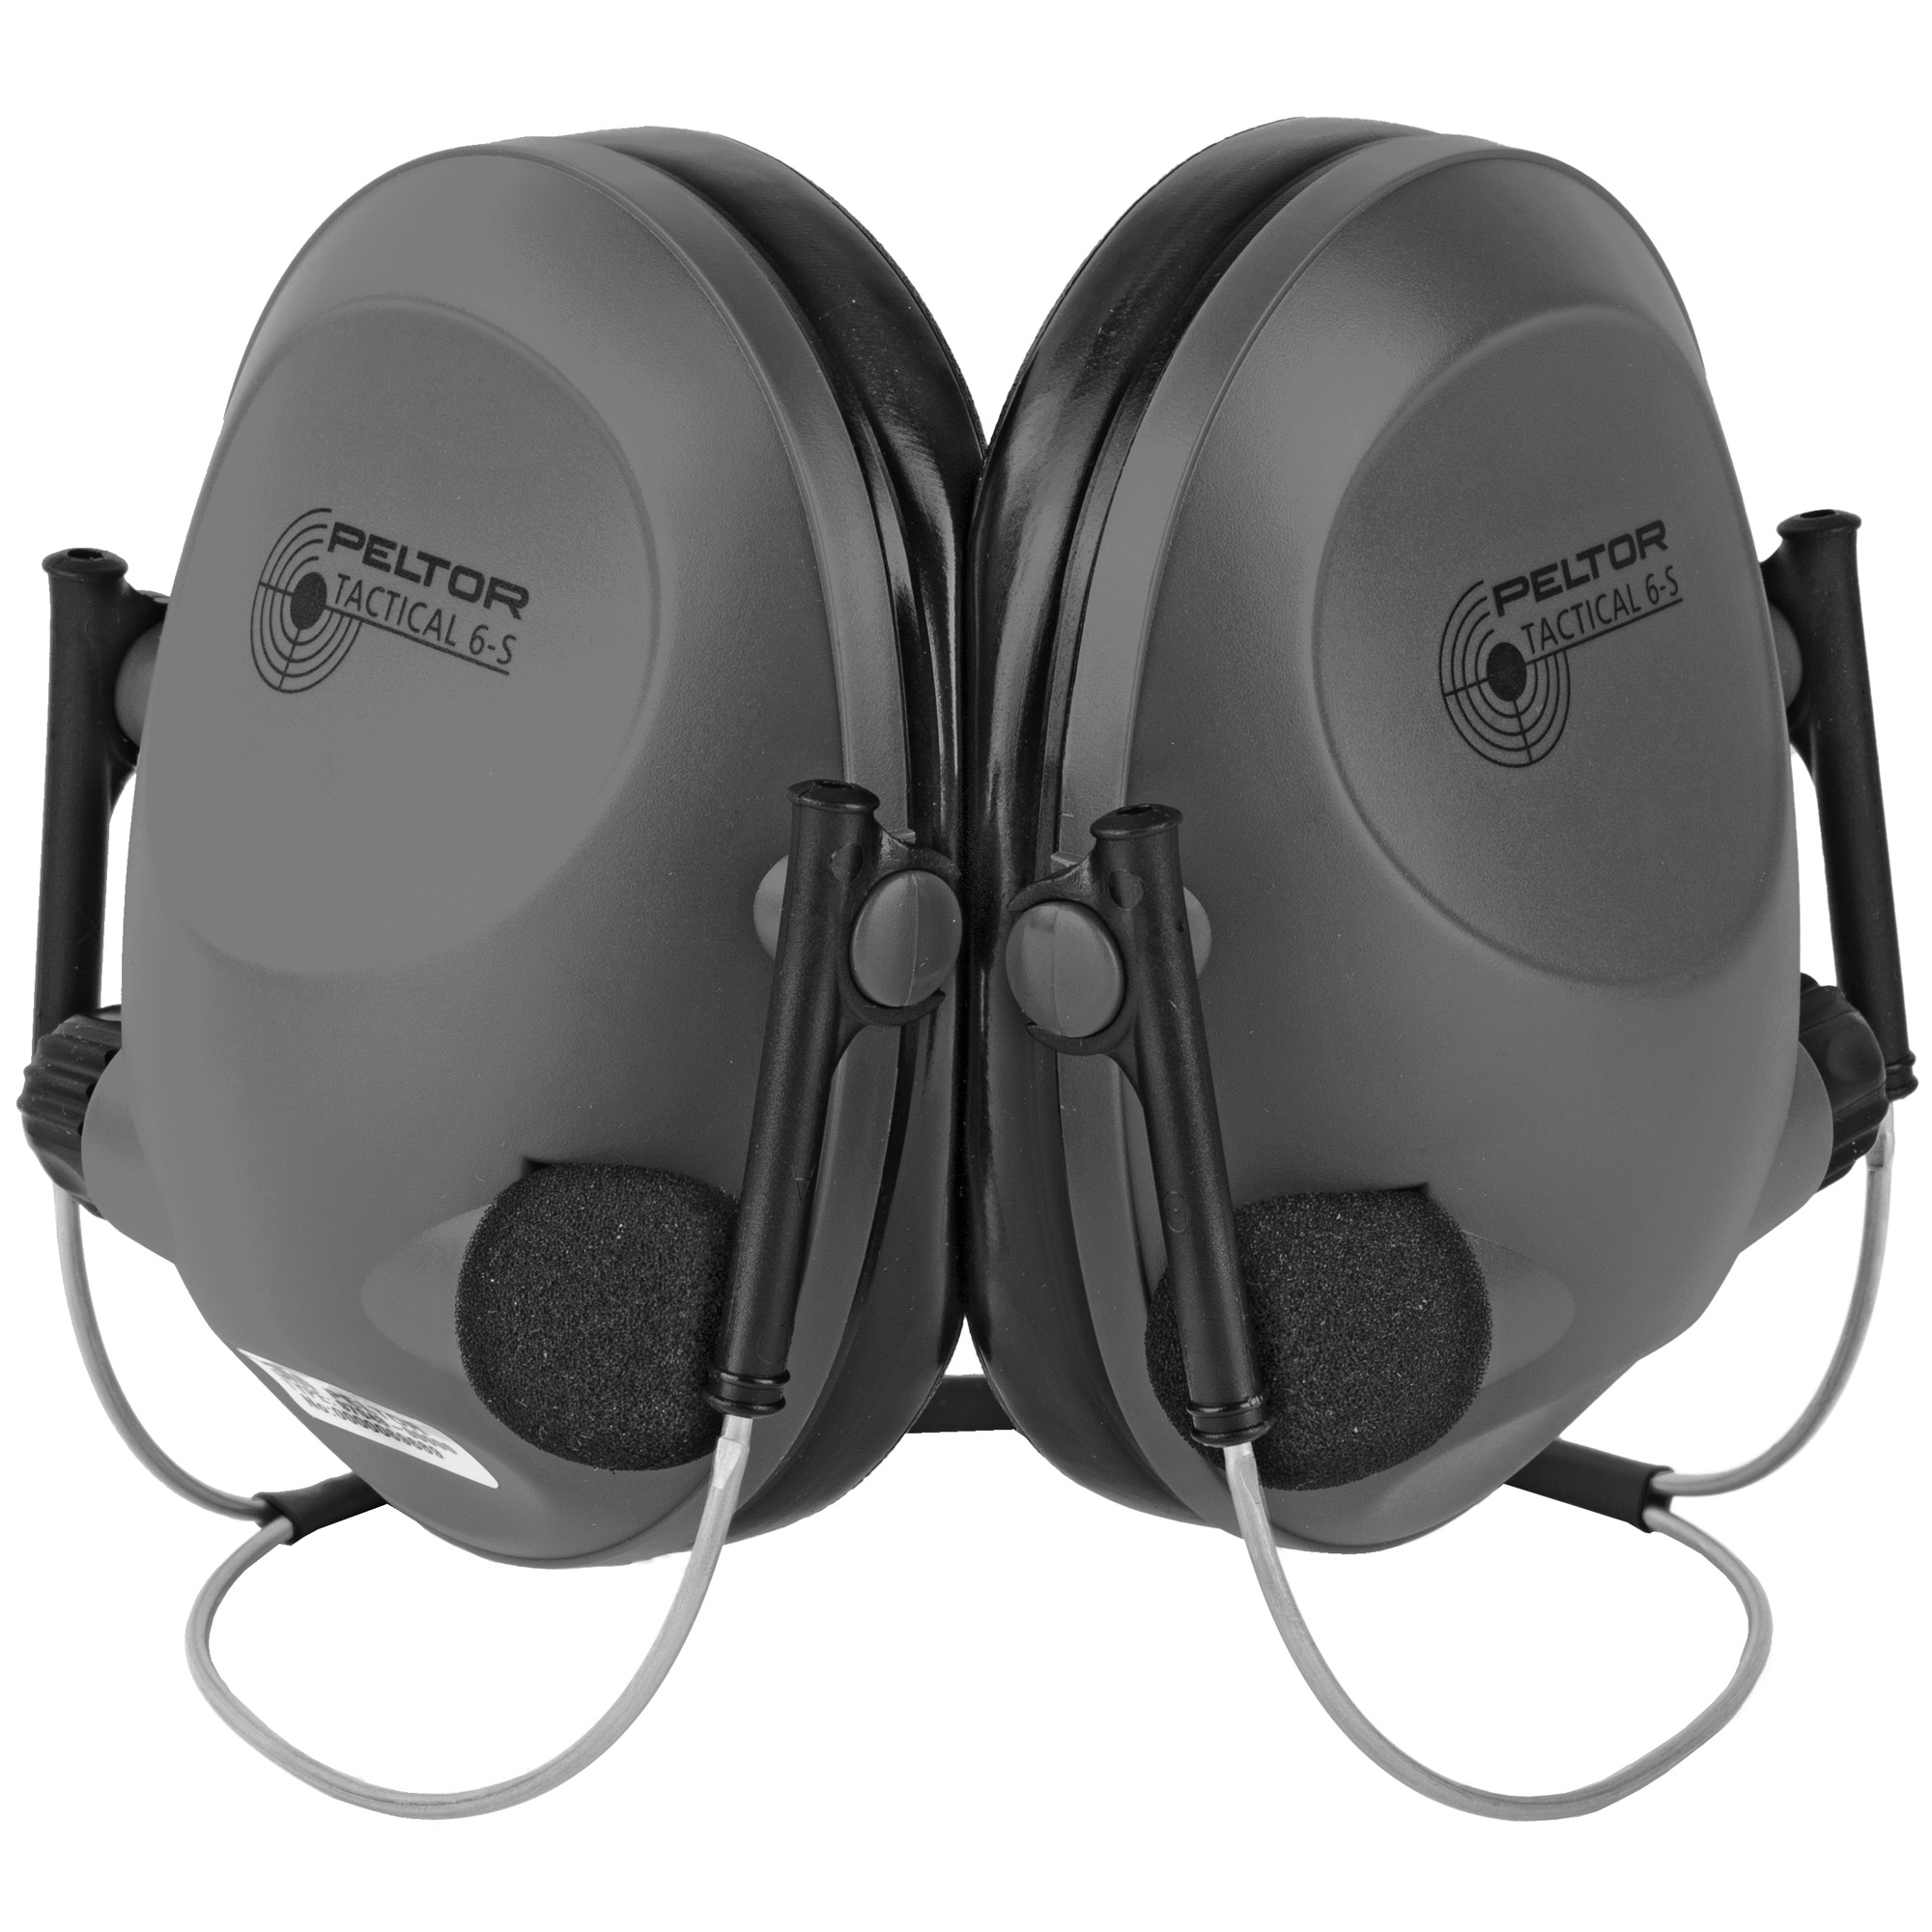 """Peltor is one of the most trusted names in hearing protection and in use by hunters and sportsmen the world over! The Tactical 6S Behind-the-Head features the same 19dB reduction as the standard Tactical 6S with a low profile"""" behind the head wrap that doesn't interfere with hats"""" headgear"""" or helmets. Active sound amplification via dual independent microphones allows the user to hear the quietest sounds around them easily"""" as well as comfortably carry on conversation or hear safety commands while blocking out harmful noise levels."""